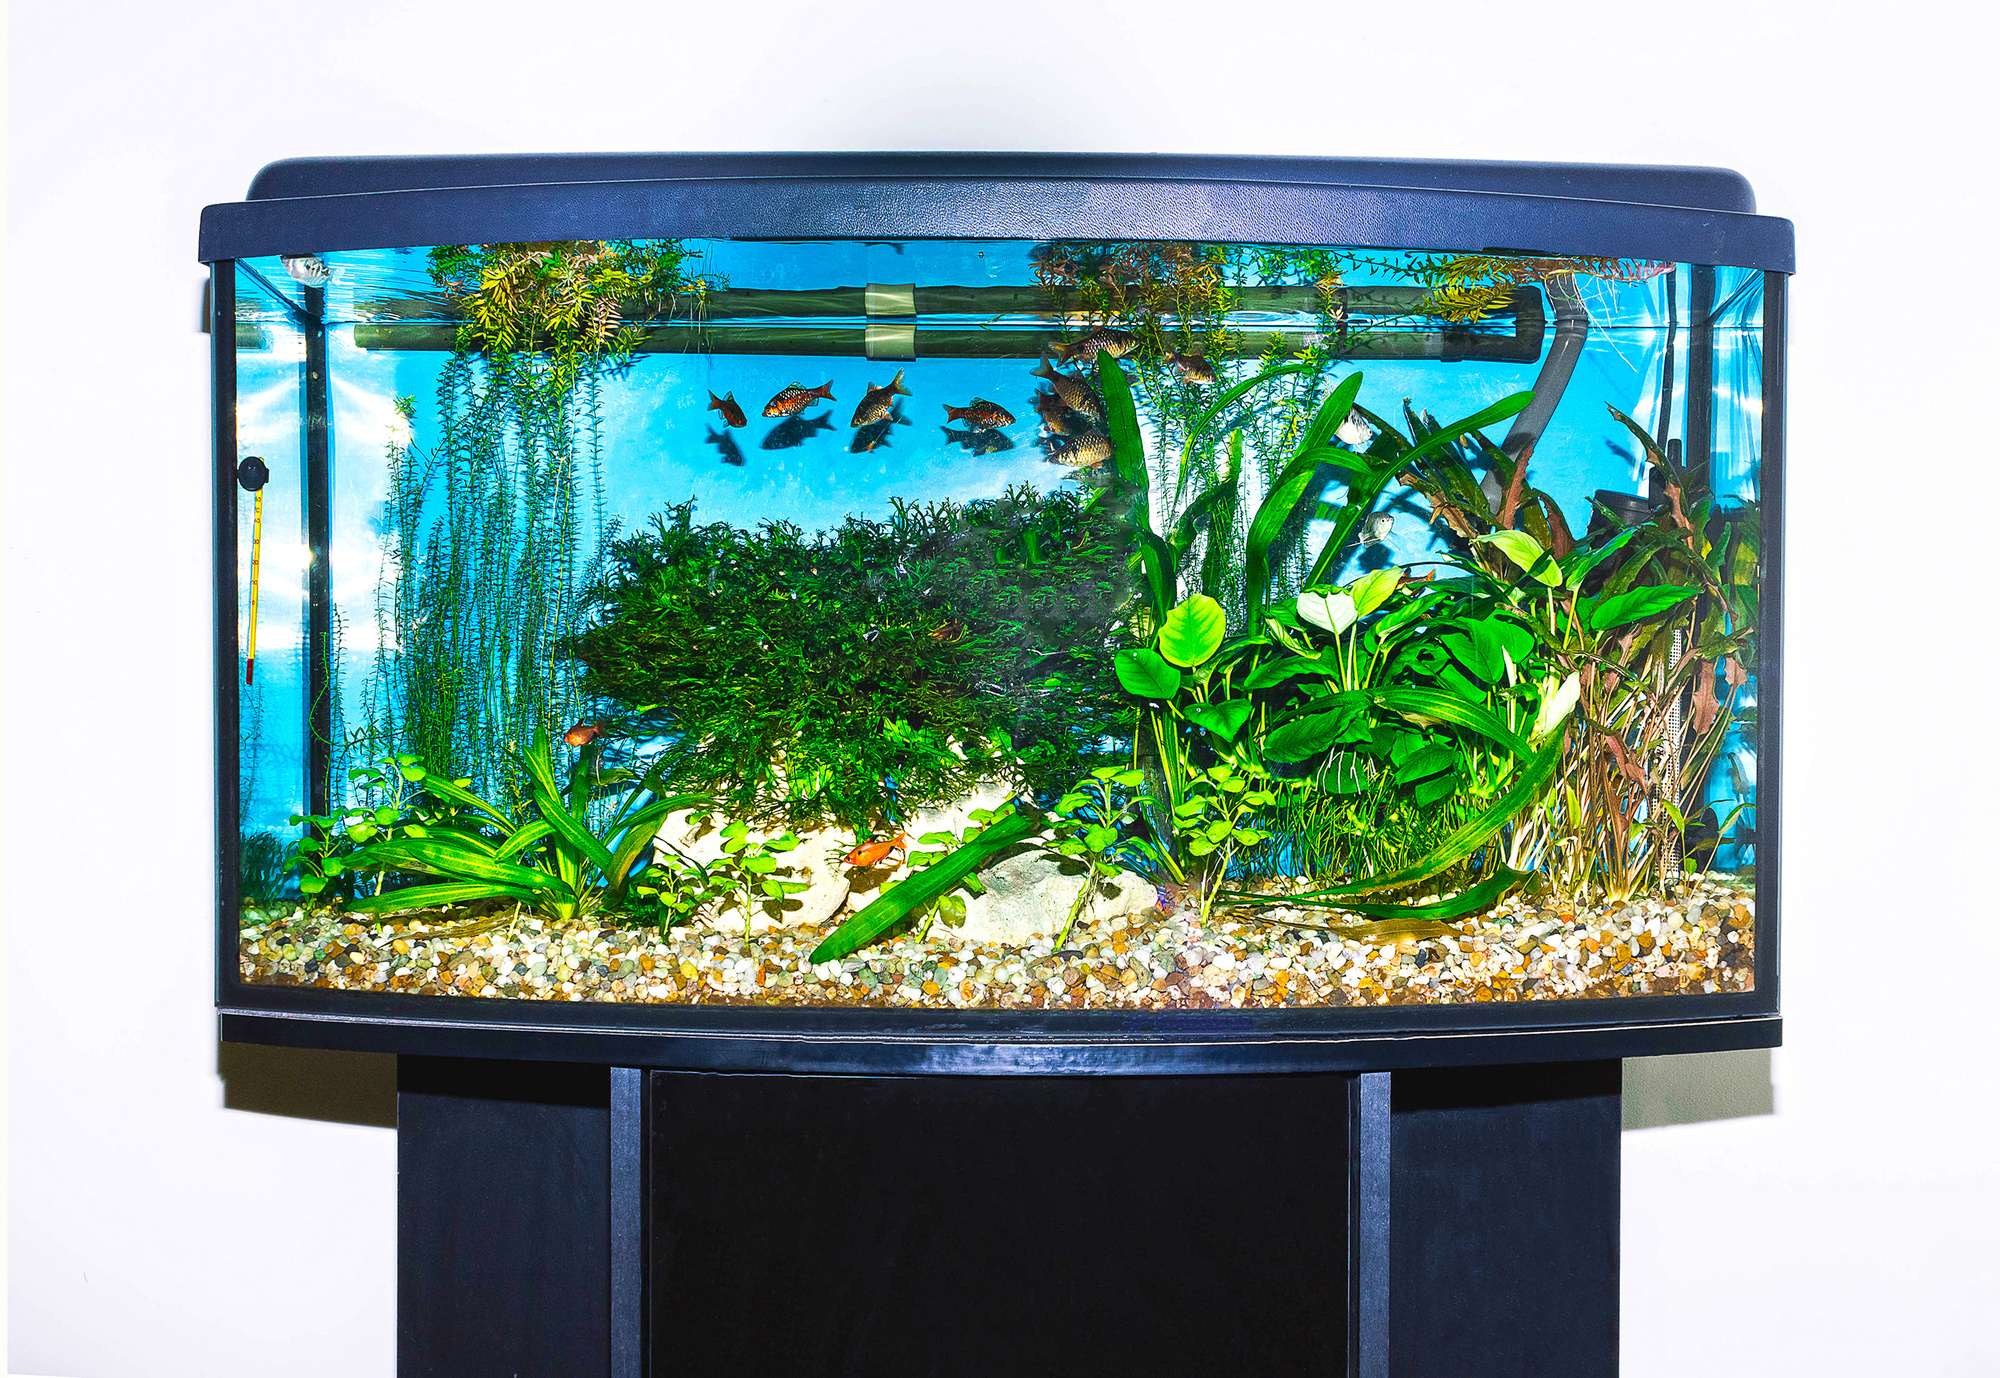 Top ten 20 gallon fish tanks for your home of office for Fish tank top